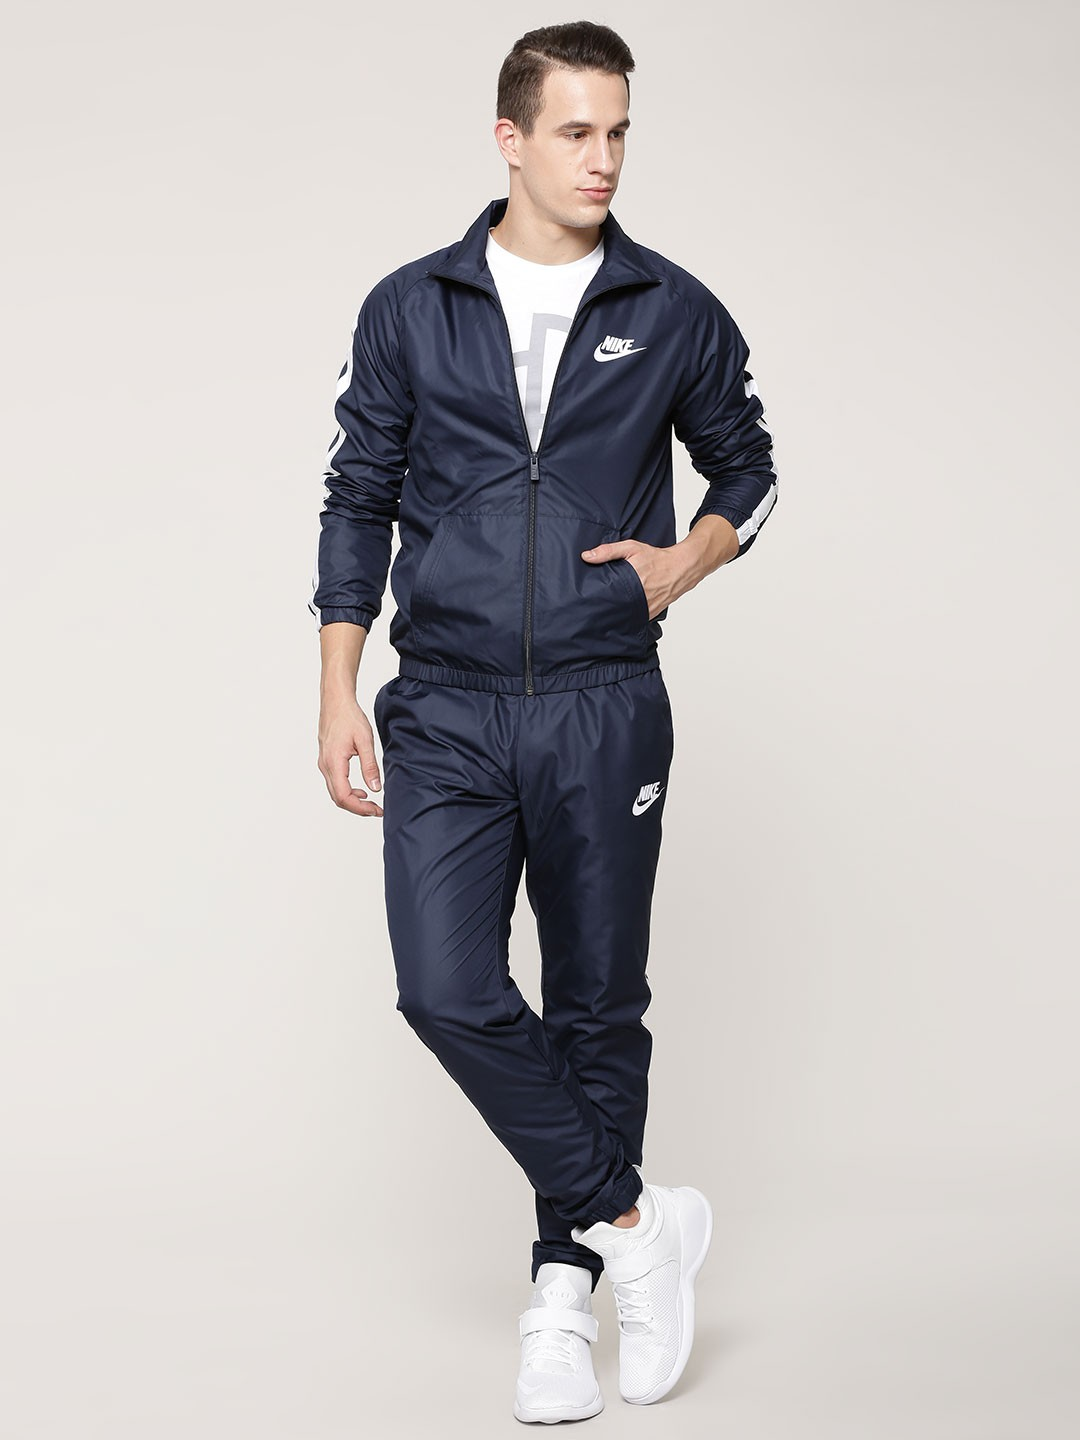 Mens AR Happy Time Blue Tracksuit Set Free shipping